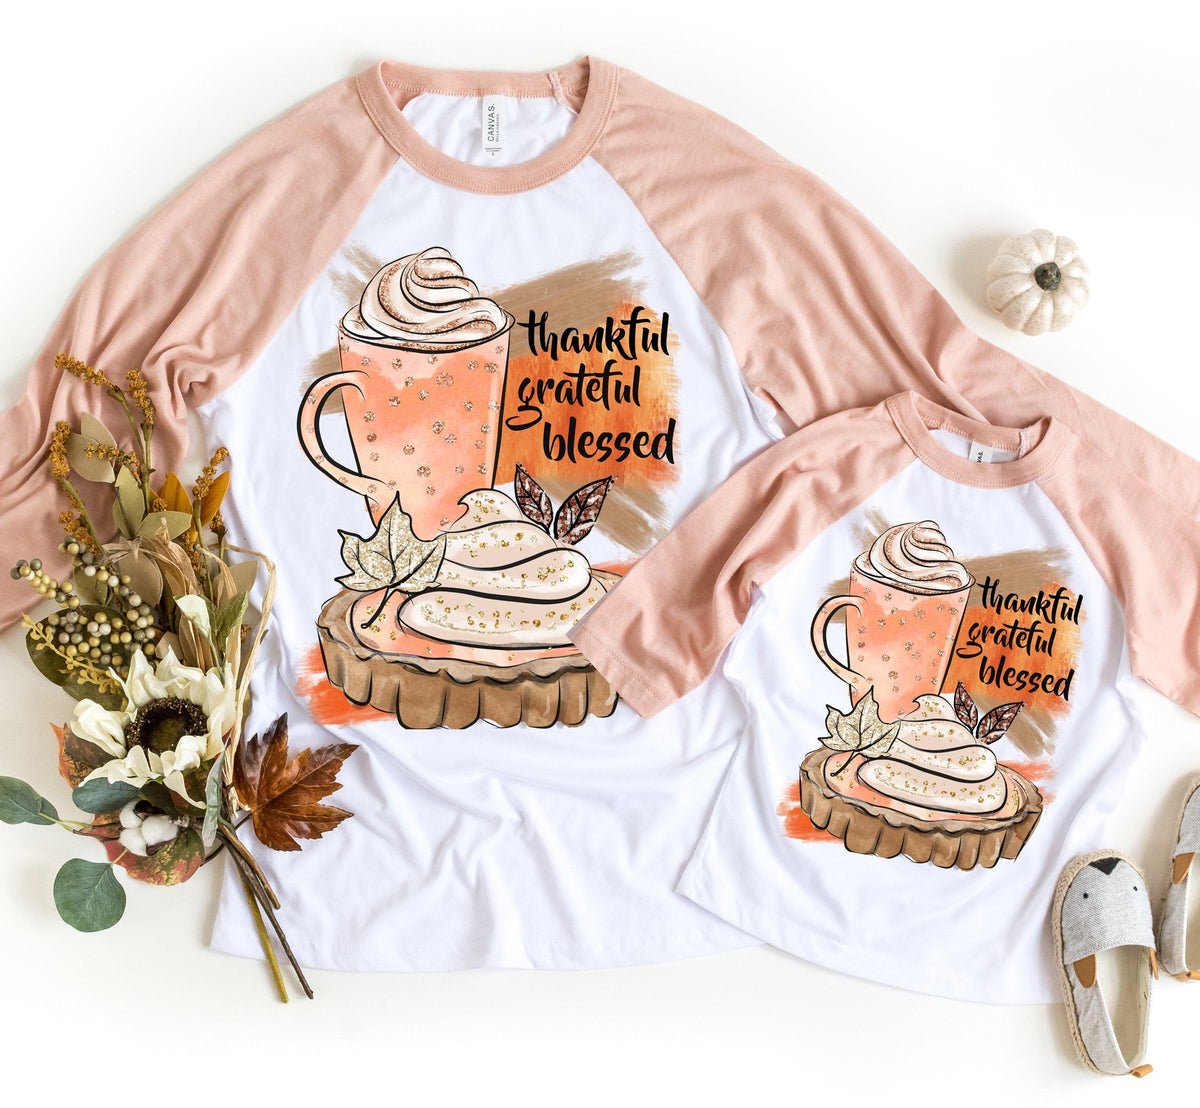 Autumn / Fall Outfits, Tees